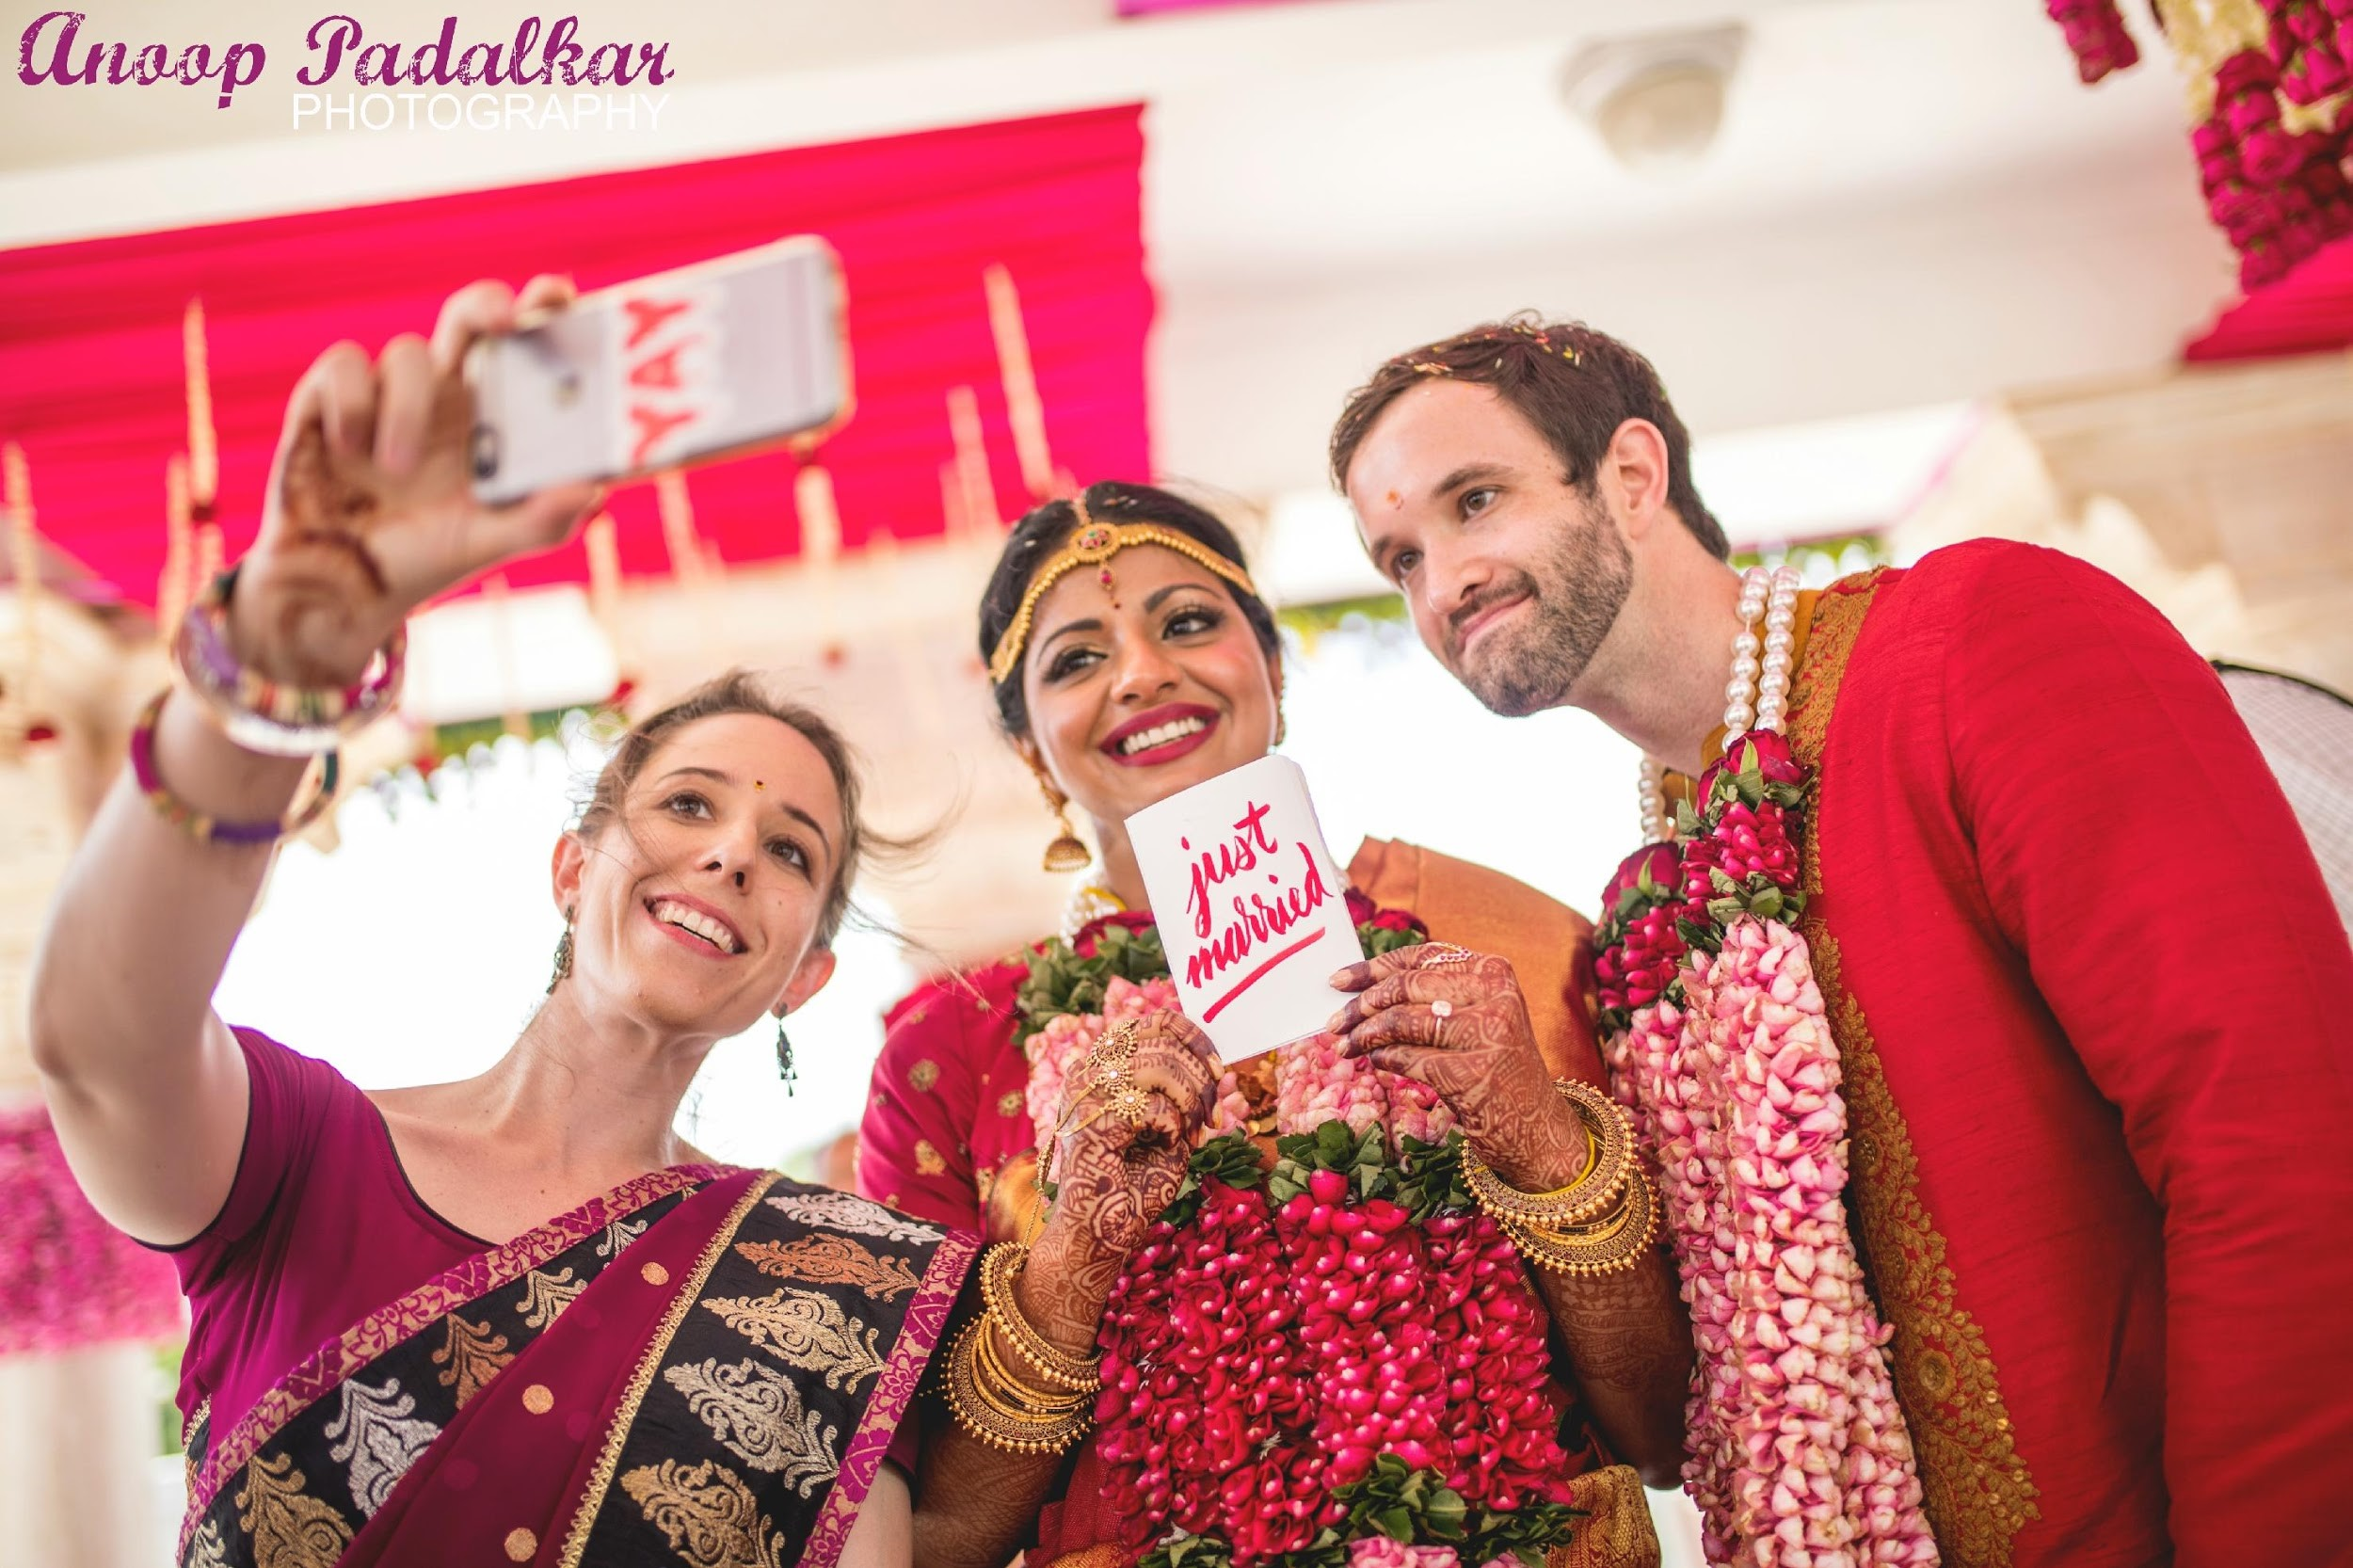 Enjoy your iIndian wedding experience